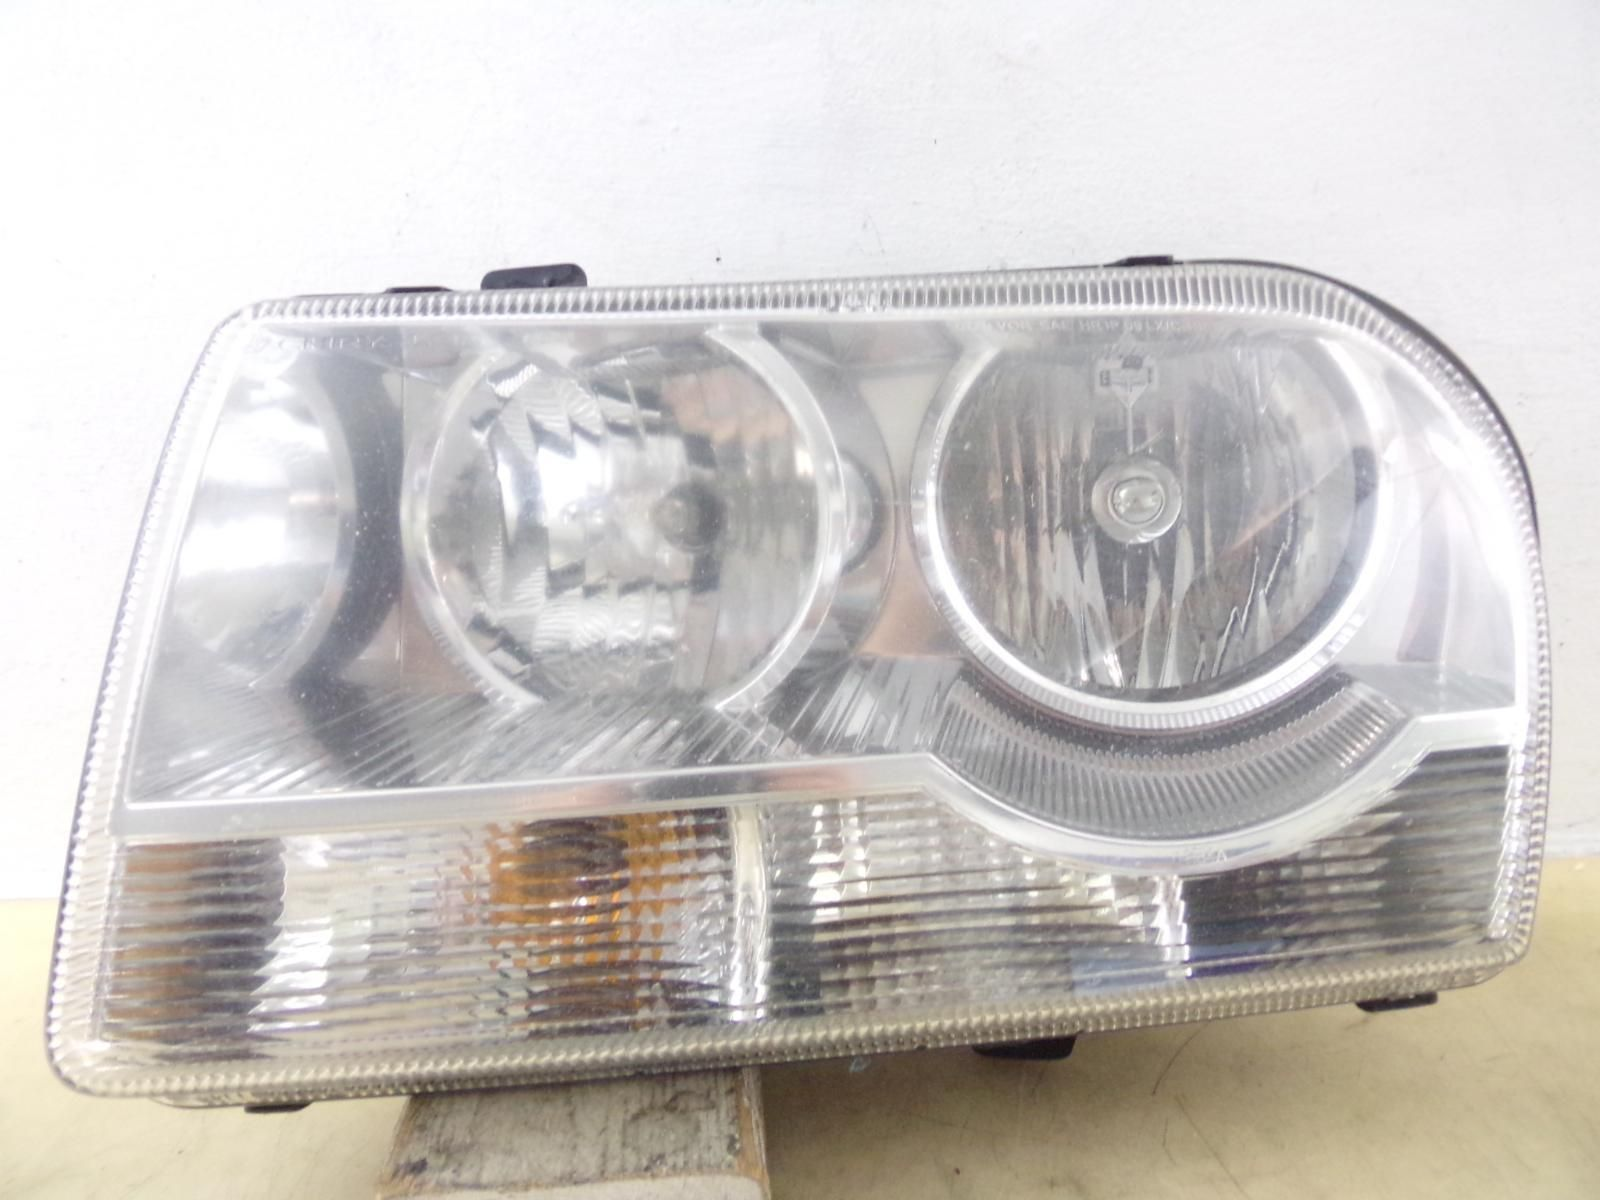 Primary image for 2005 2006 2007 2008 CHRYSLER 300 DRIVER LH 3-BULB HALOGEN HEADLIGHT OEM 14